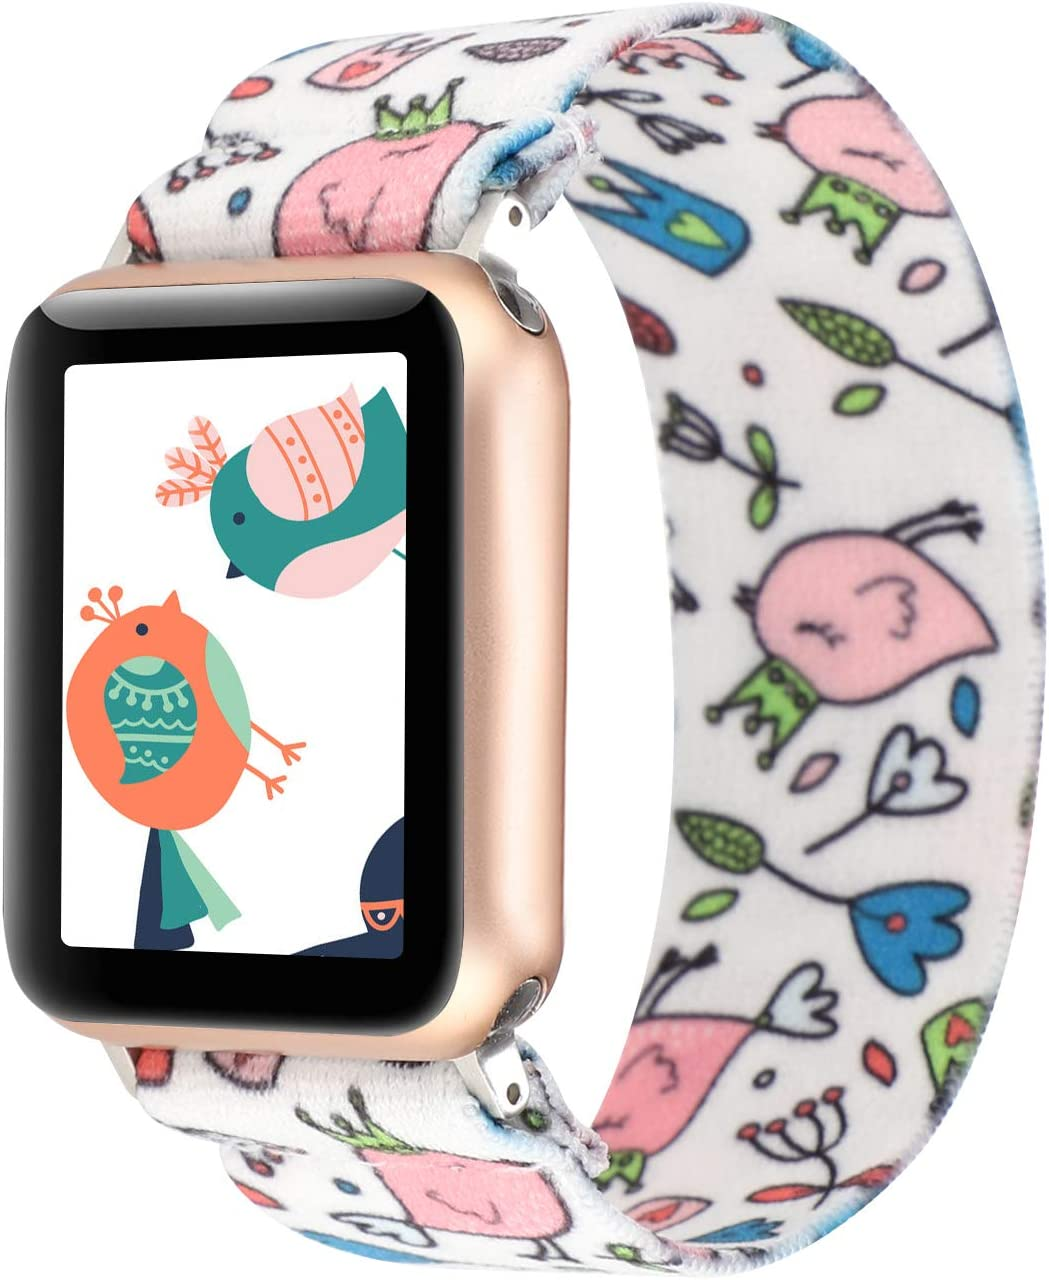 PENKEY Stretchy Band Compatible with Apple Watch Elastic Band 38mm 40mm Cute Pattern Soft Nylon Strap Replacement Wristband for iWatch Series 5/4/3/2/1 (Cartoon Animals, 38mm/40mm Small Size)